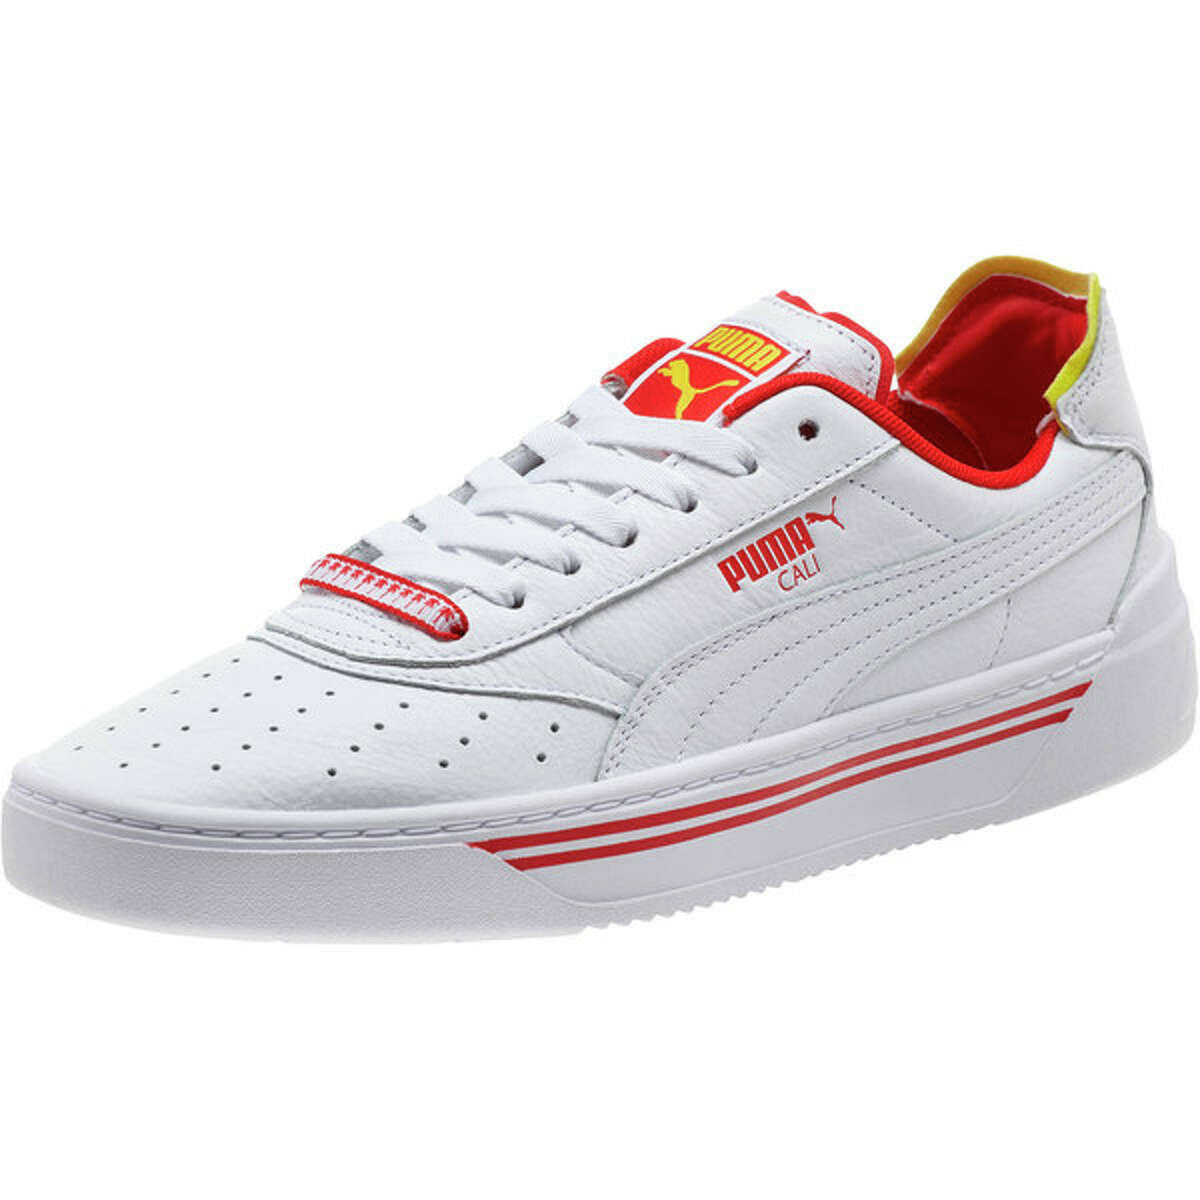 In 2019, Puma released a pair of shoes called,